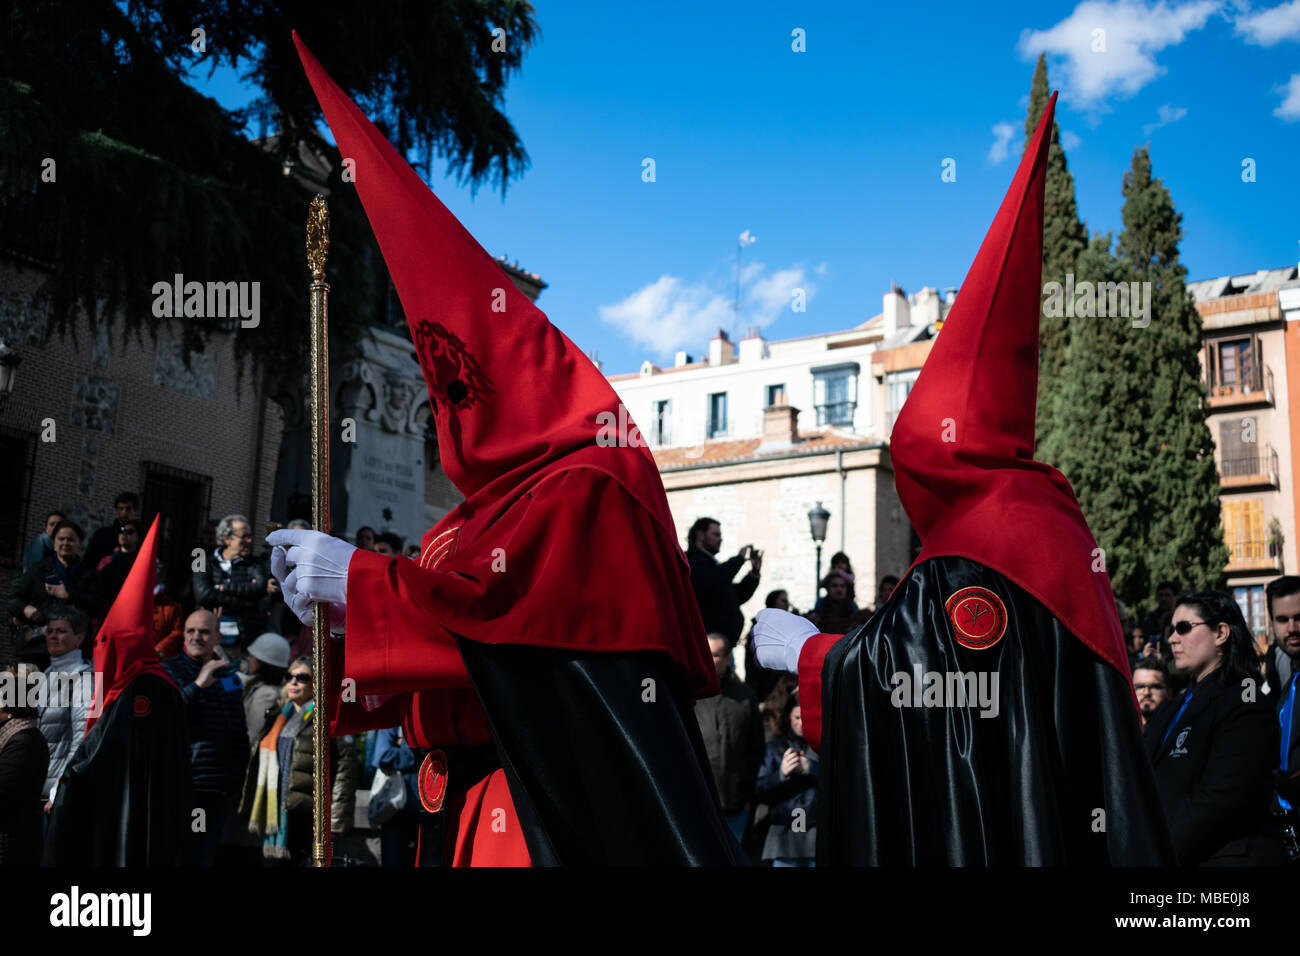 Penitents adjusting their robes and hoods in an Easter parade on Holy Saturday, Semana Santa (Holy Week) parades, Madrid, Spain, 2018 - Stock Image